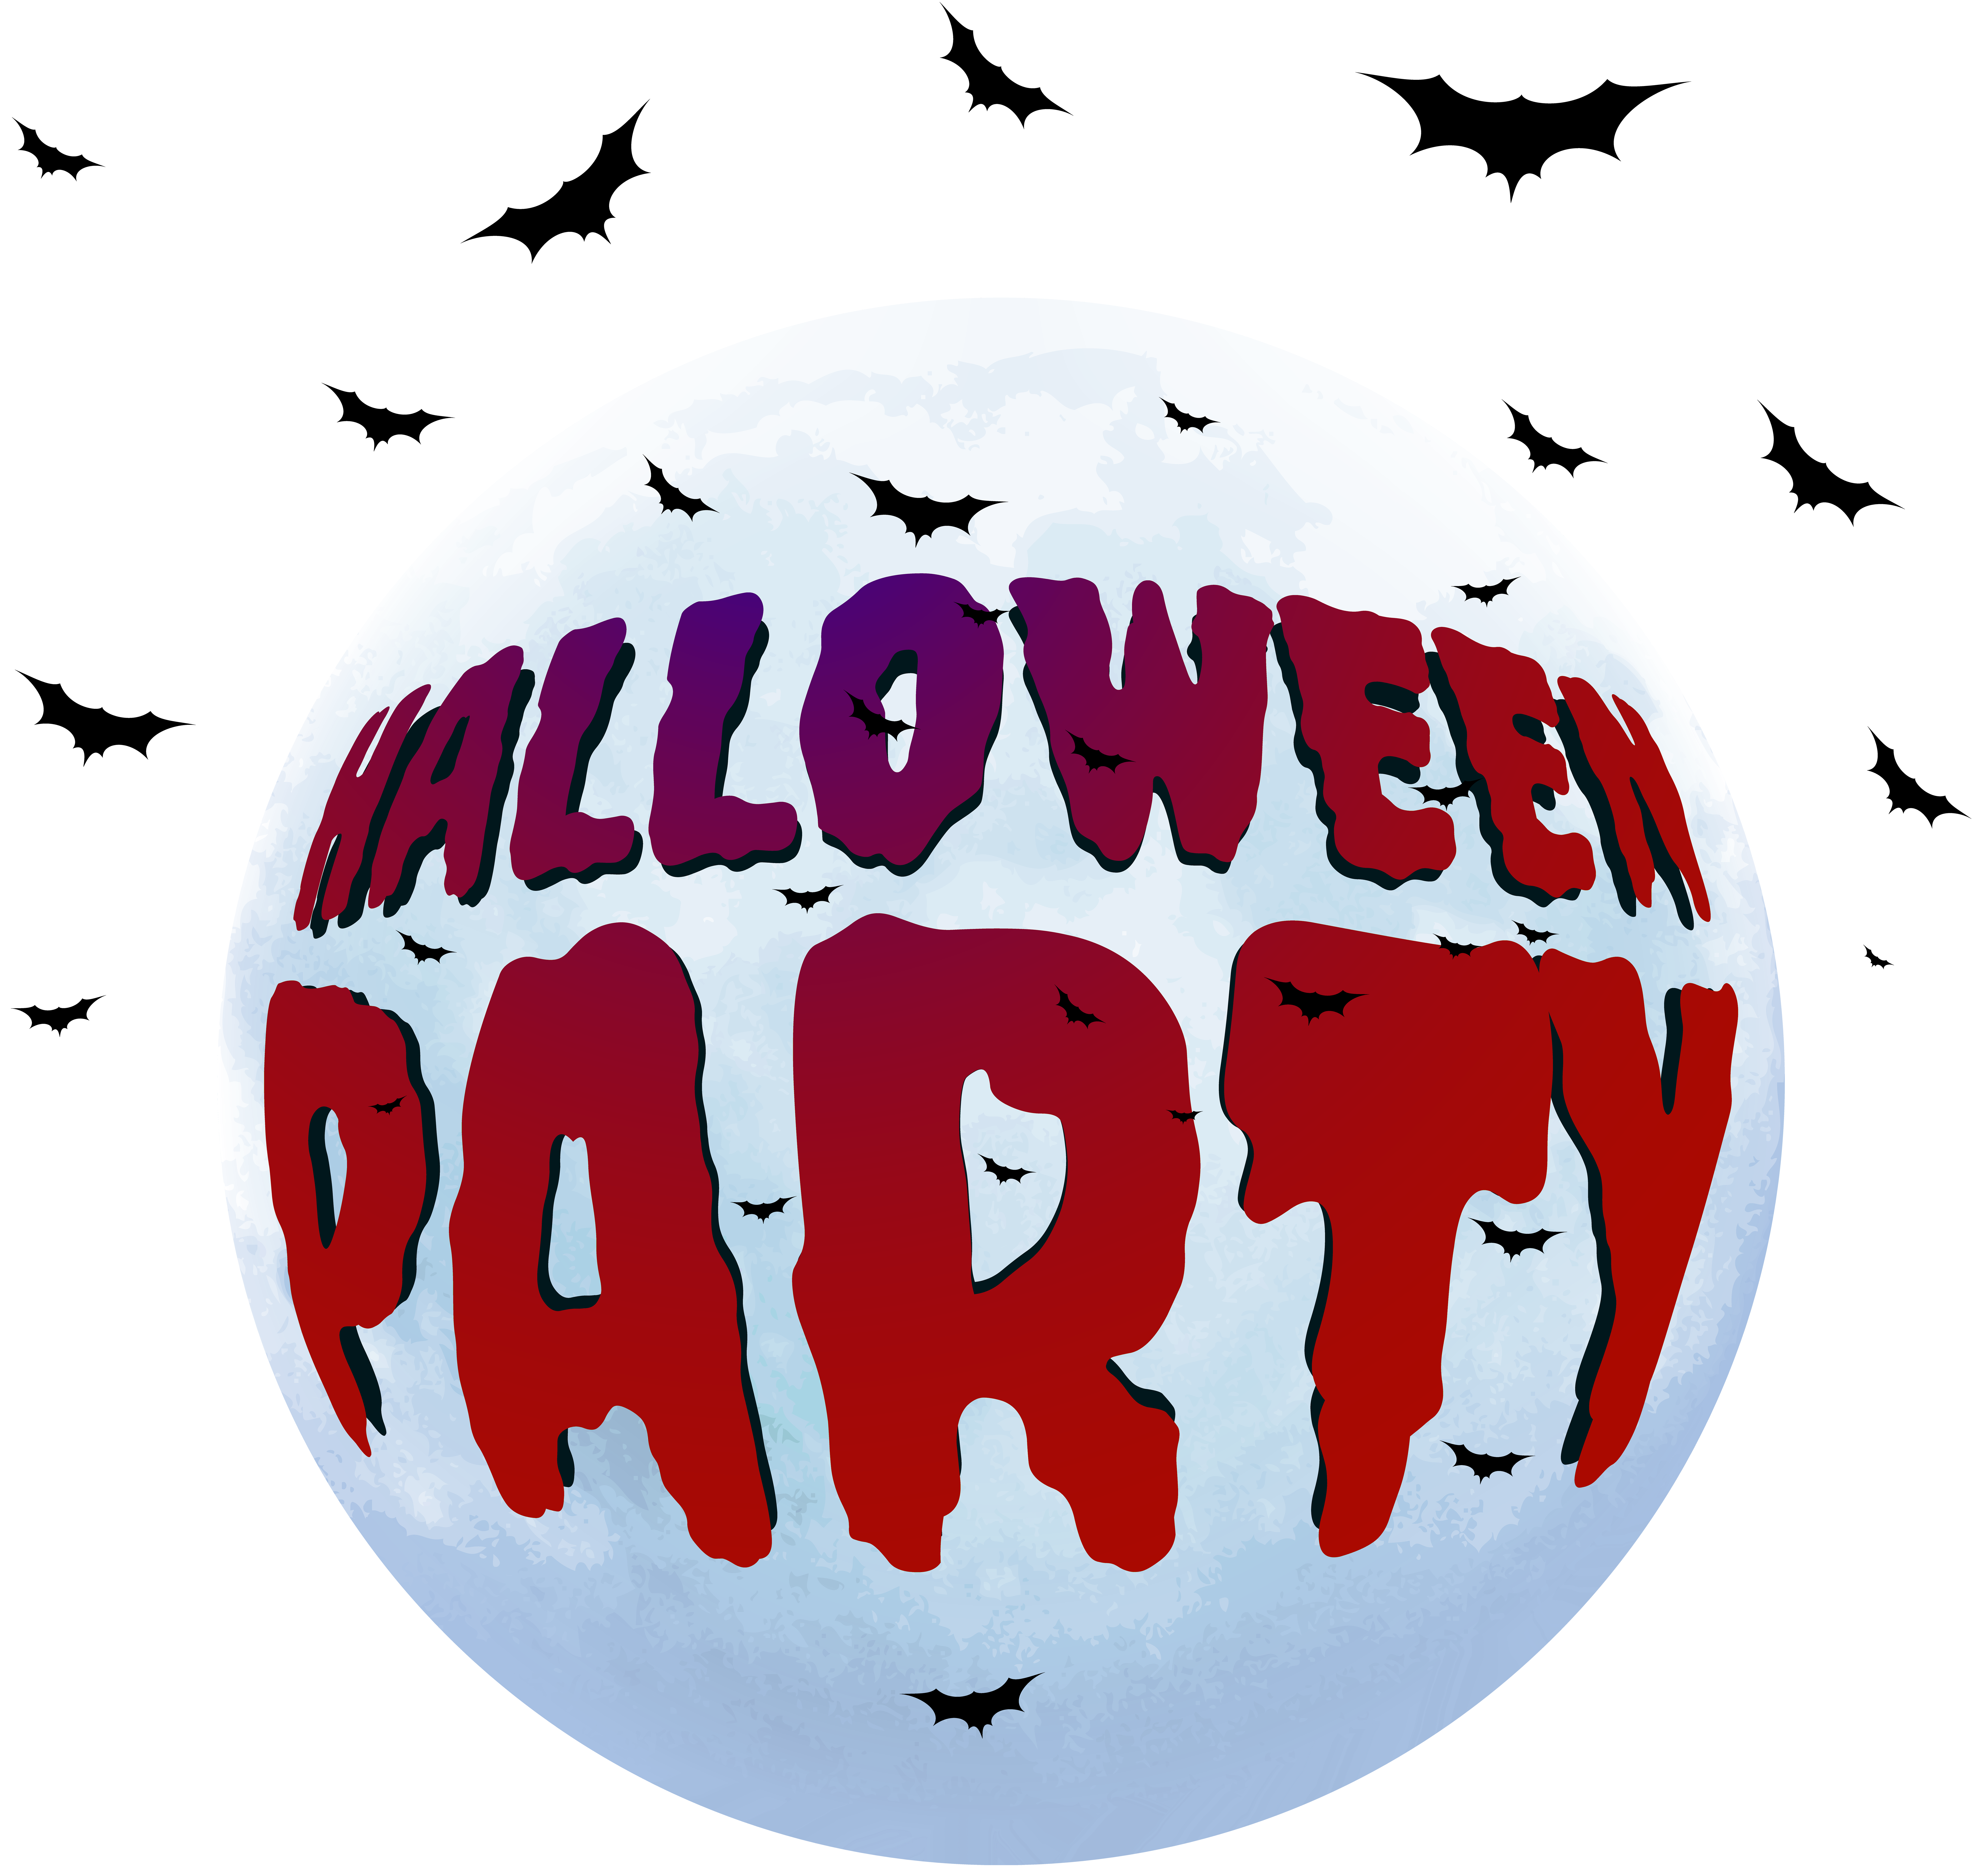 Free halloween party clipart png library stock Halloween Party PNG Clip Art Image | Gallery Yopriceville - High ... png library stock